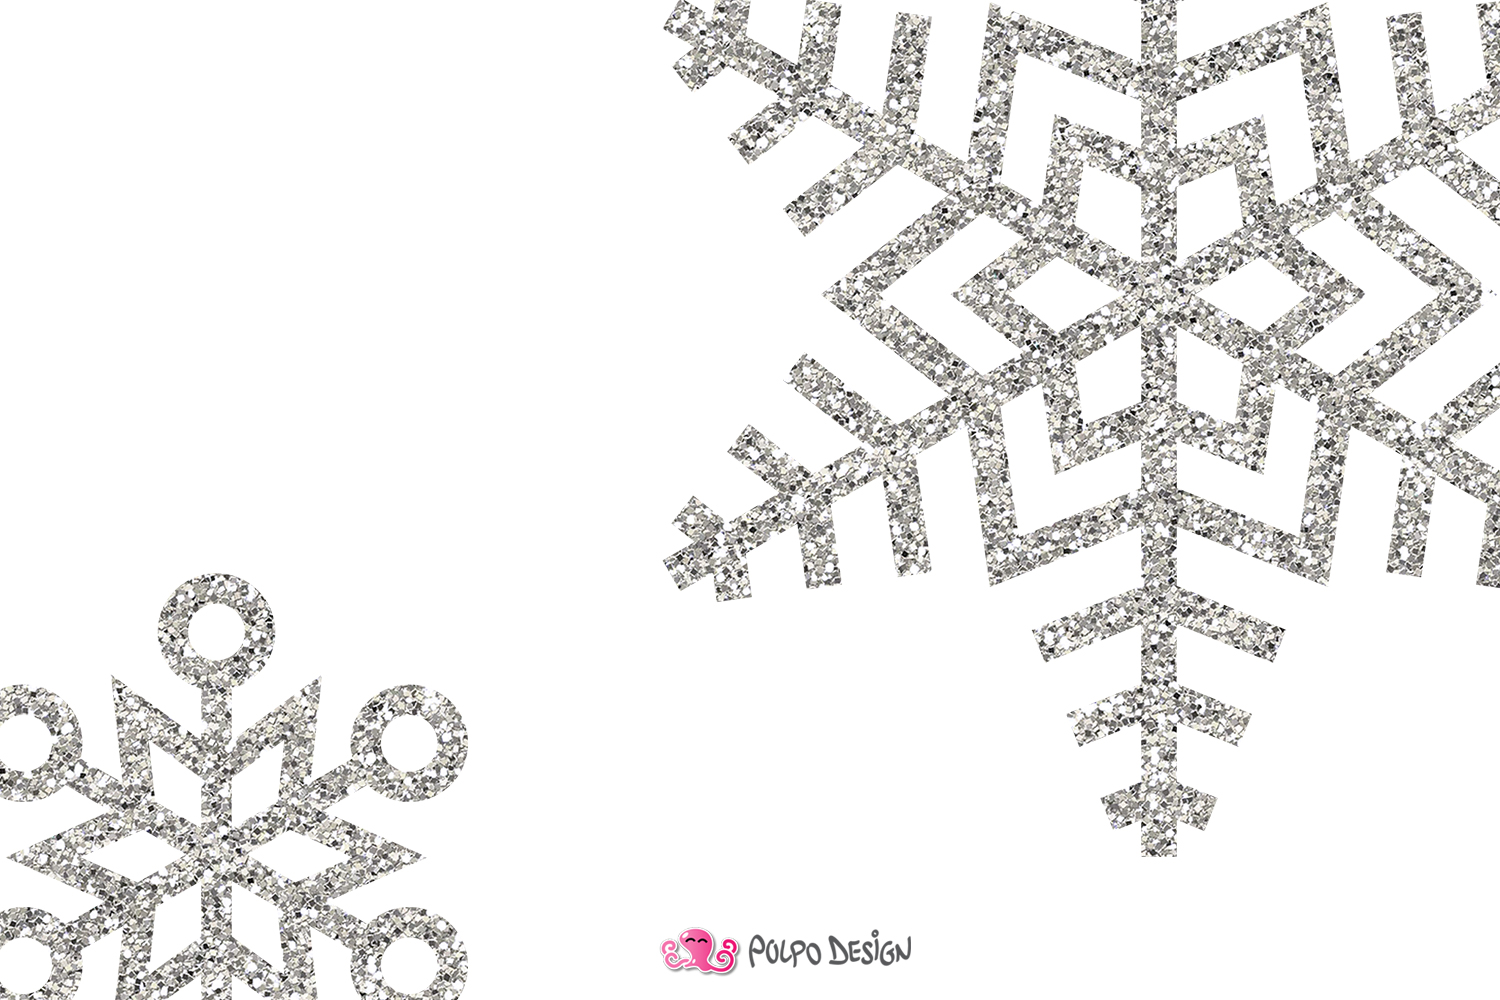 Silver Glitter Snowflakes clipart.